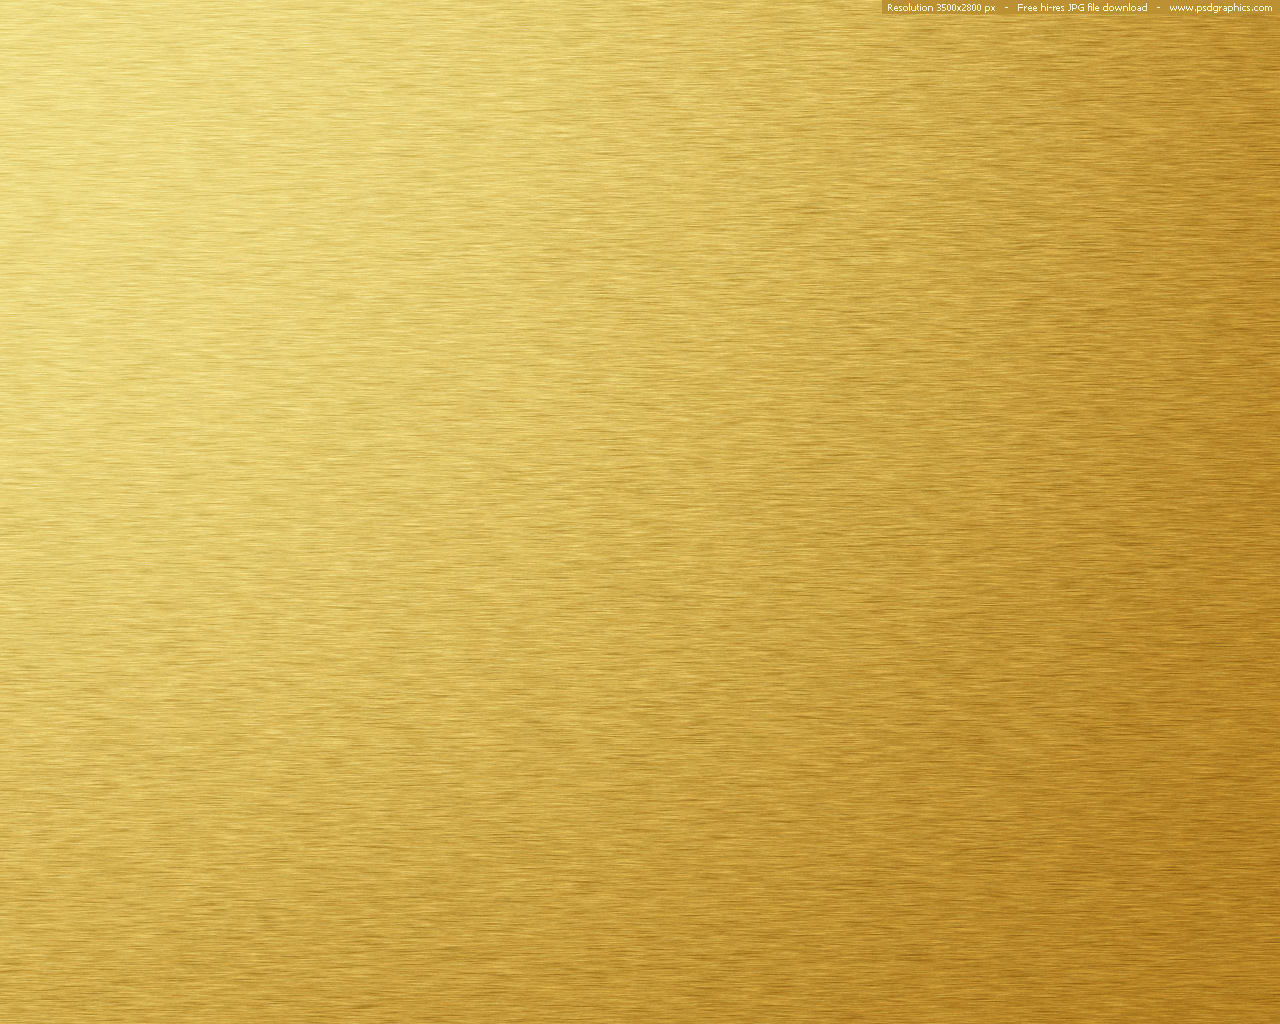 Keywords Gold Plate Shiny Metal Background Golden Texture Brushed Surface Author PSD Graphics